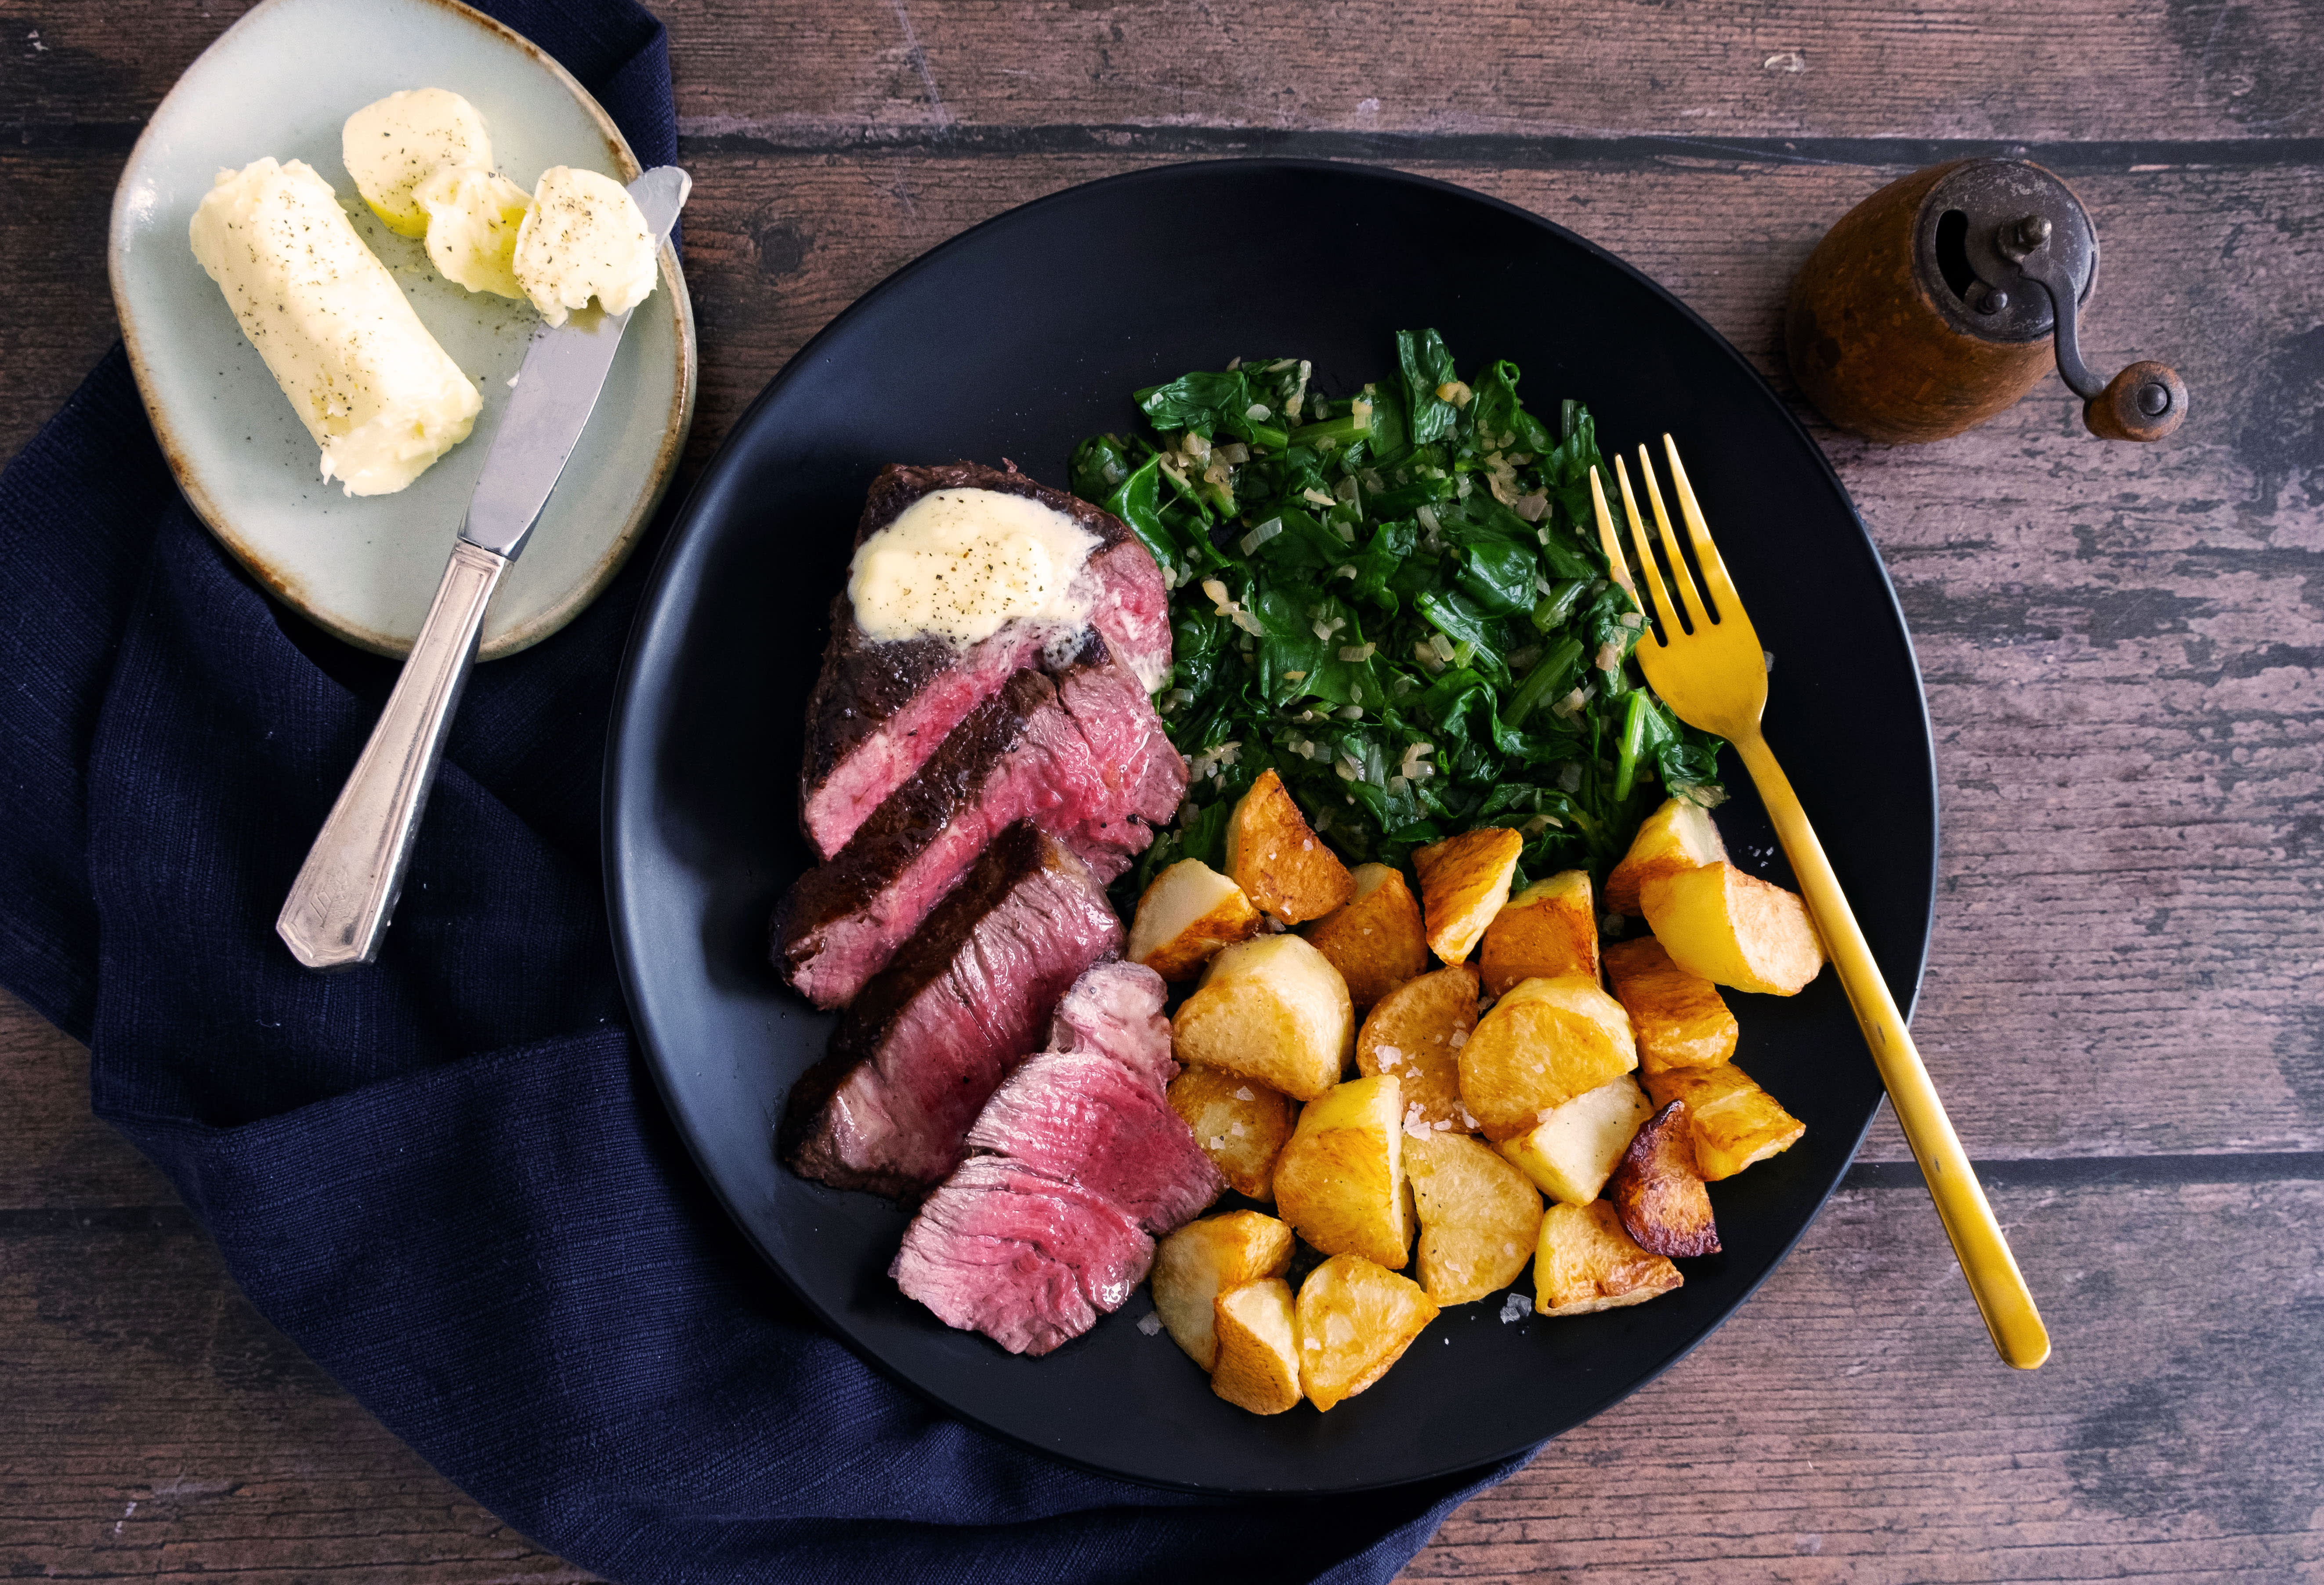 9 oz Fillet of Beef with Truffle Butter and Roast Potatoes